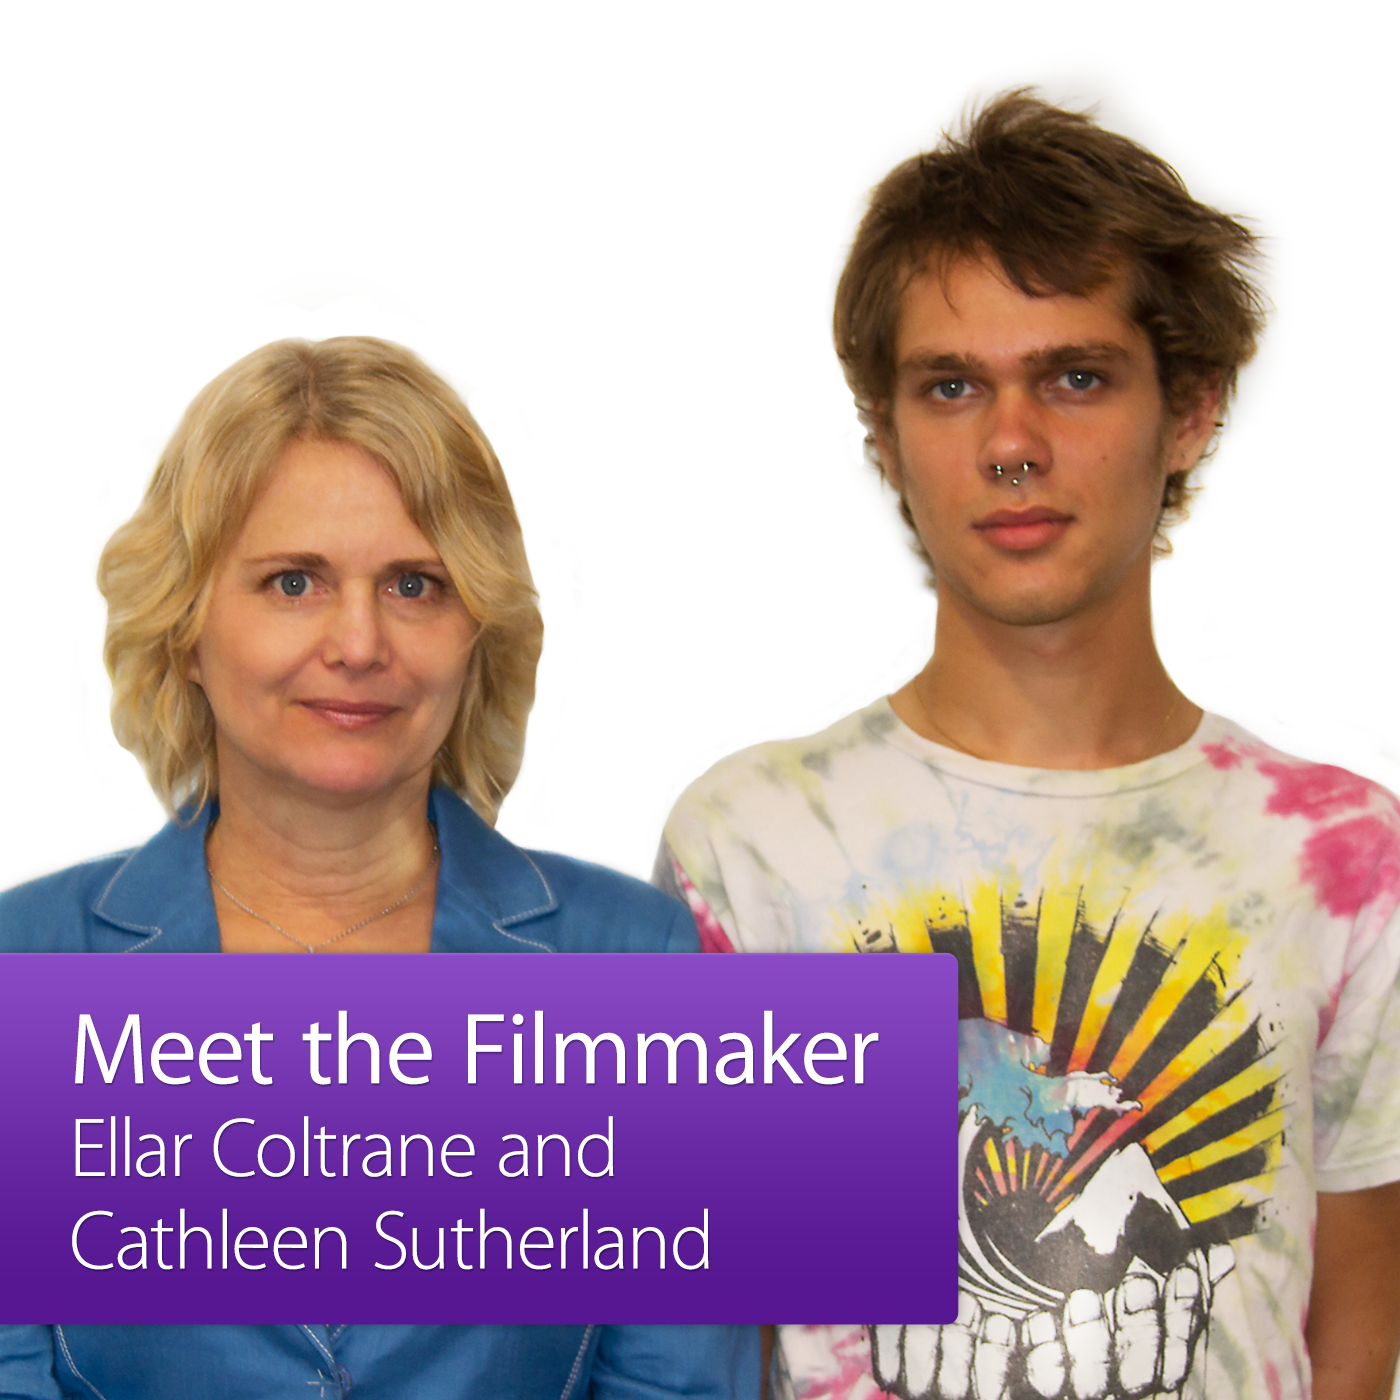 Ellar Coltrane and Cathleen Sutherland: Meet the Filmmaker